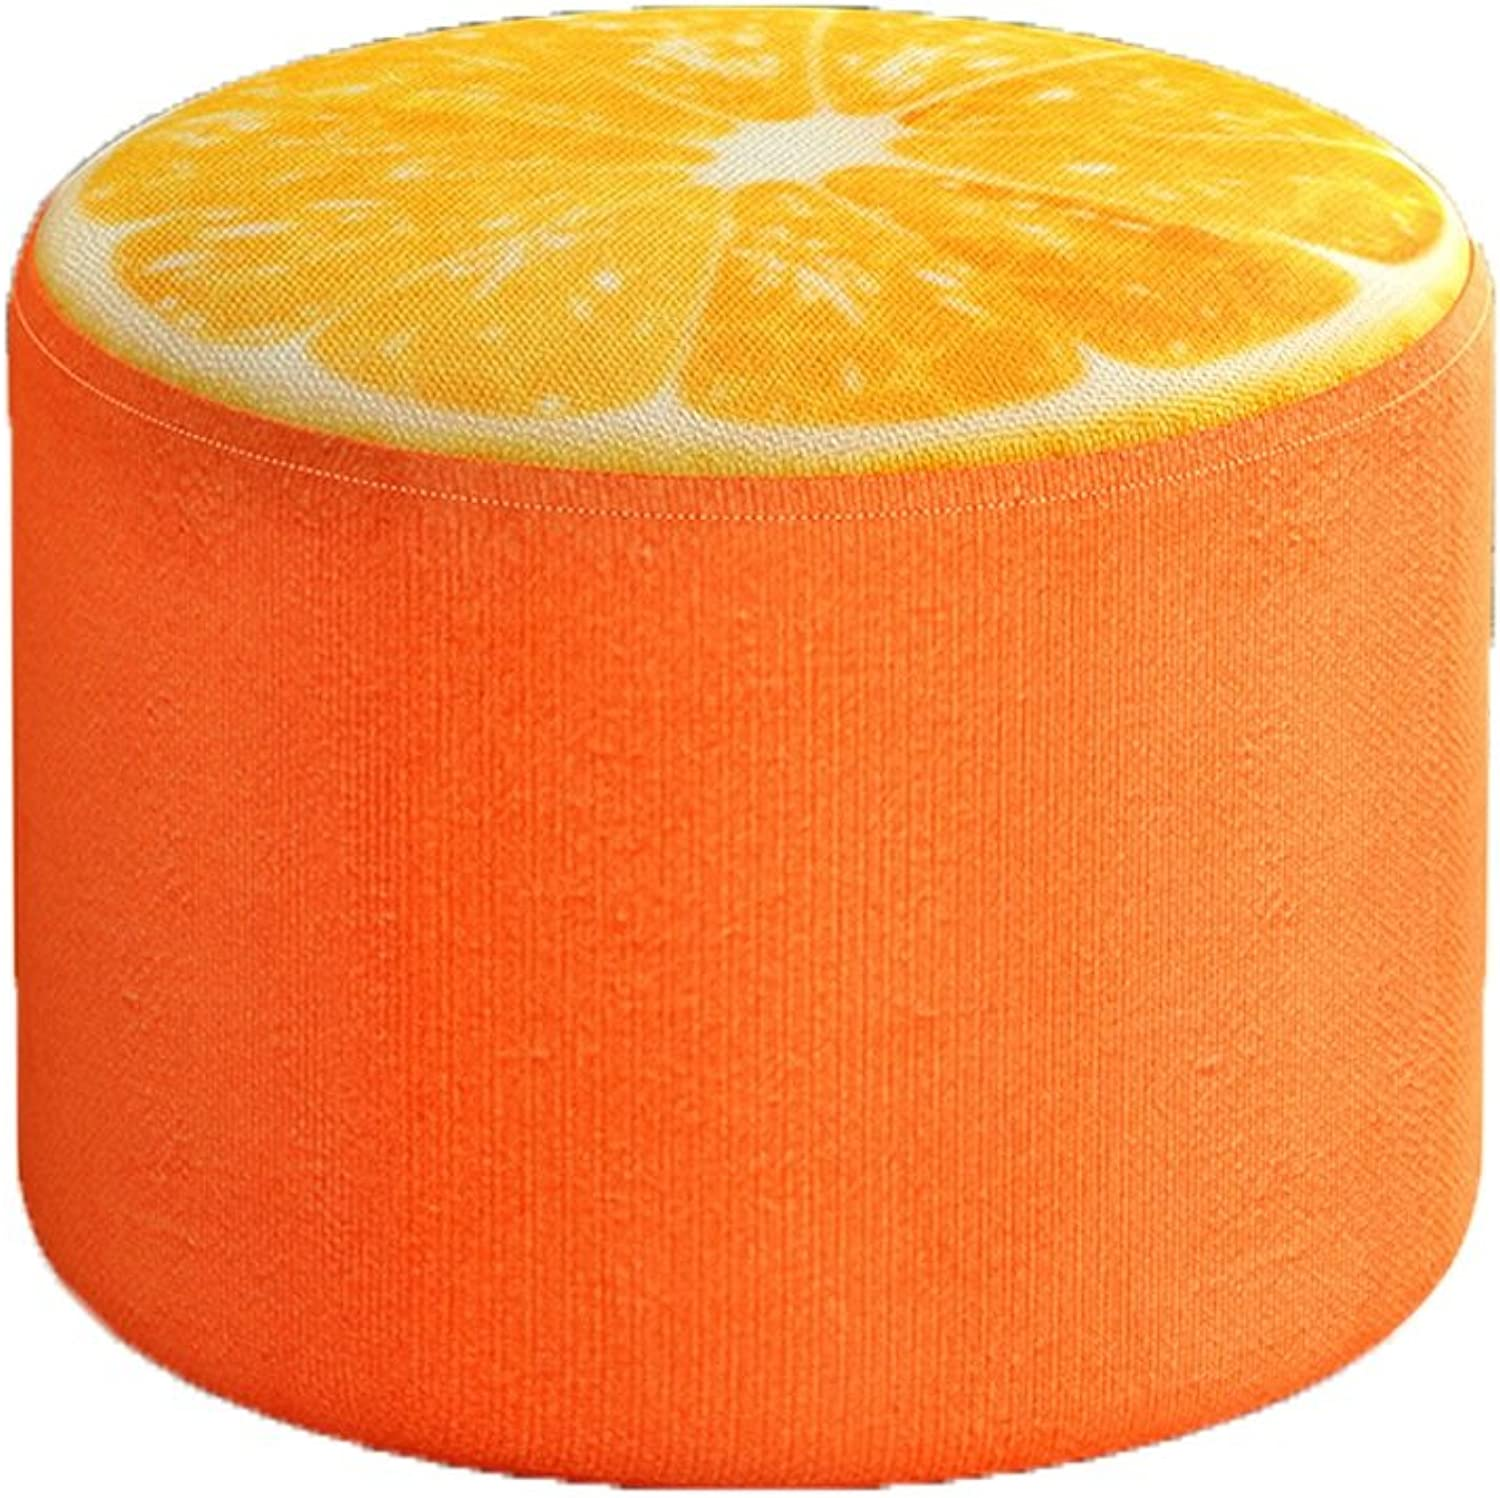 LIUXUEPING Small Stool Home Fruit Stool to Change shoes Stool Small Bench Sofa Stool Solid Wood Stool Creative Fabric Stool (color   B)